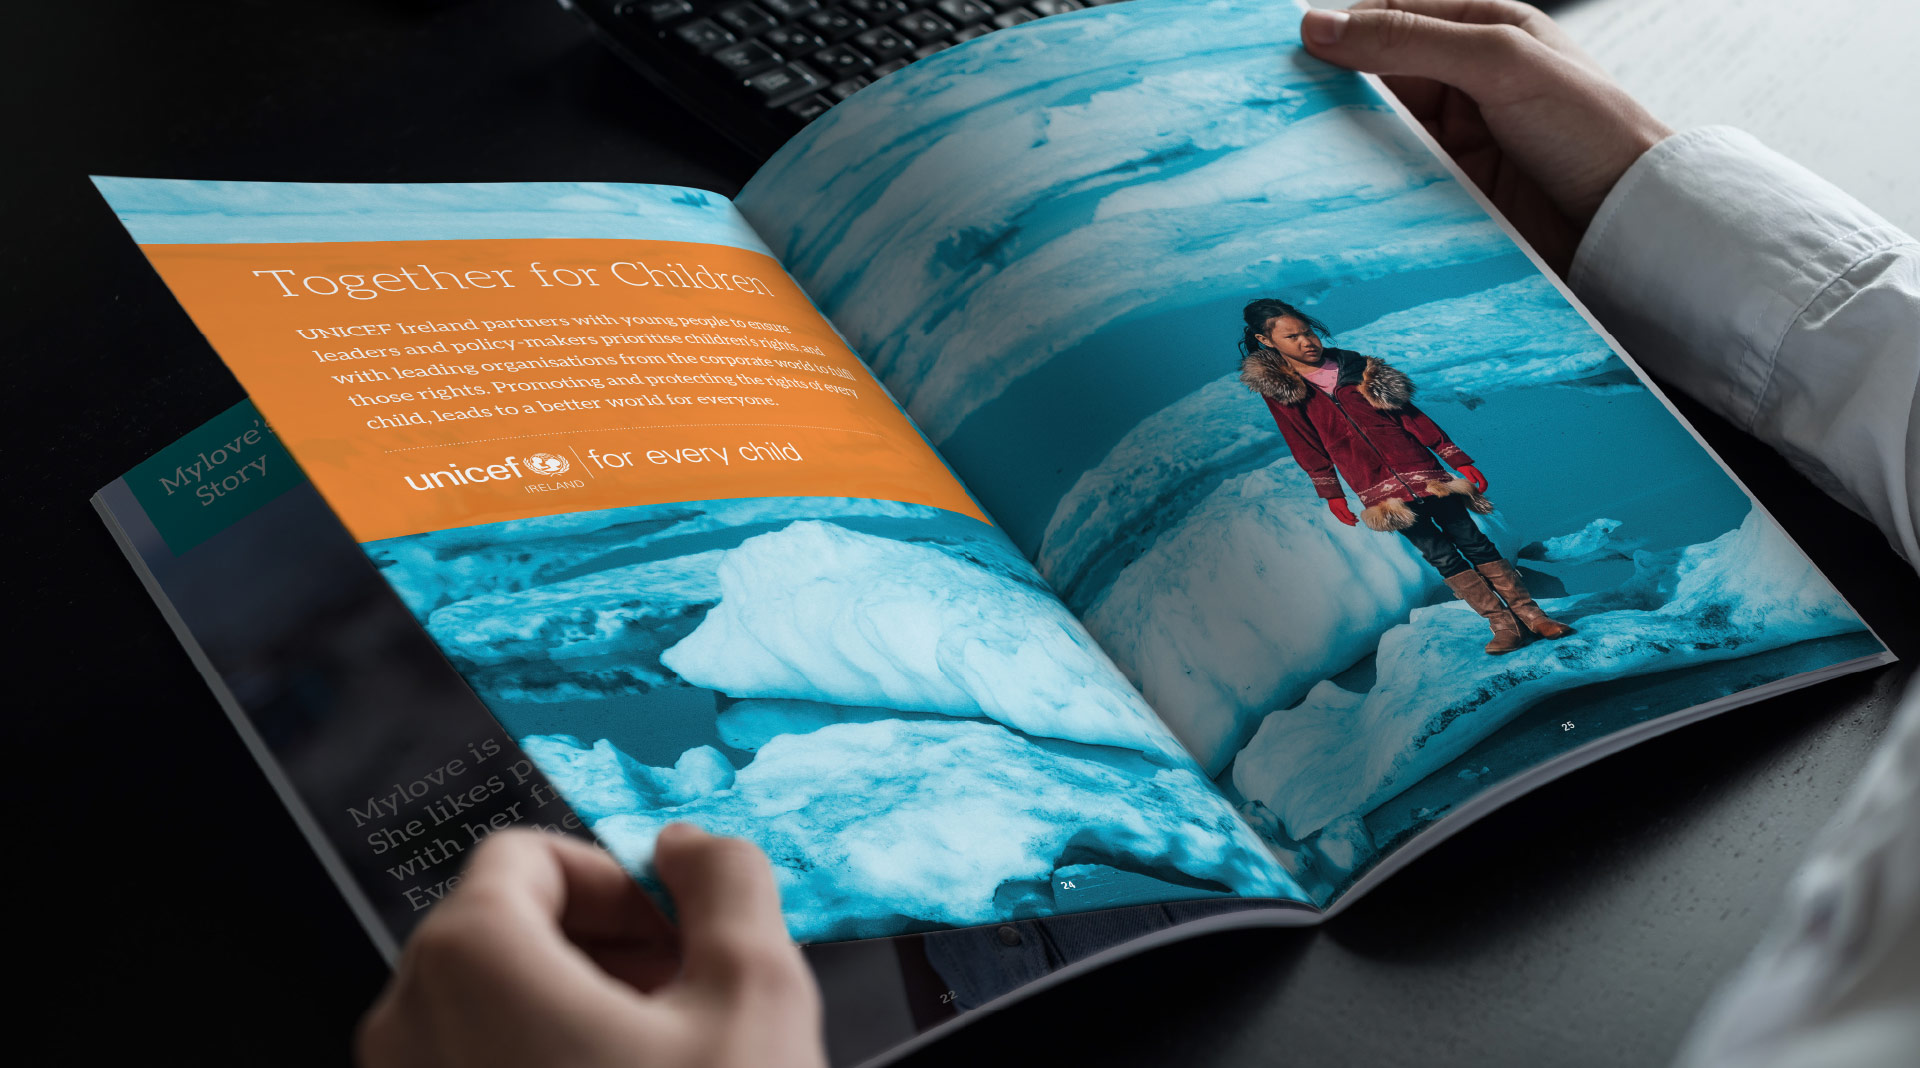 Unicef title page spread